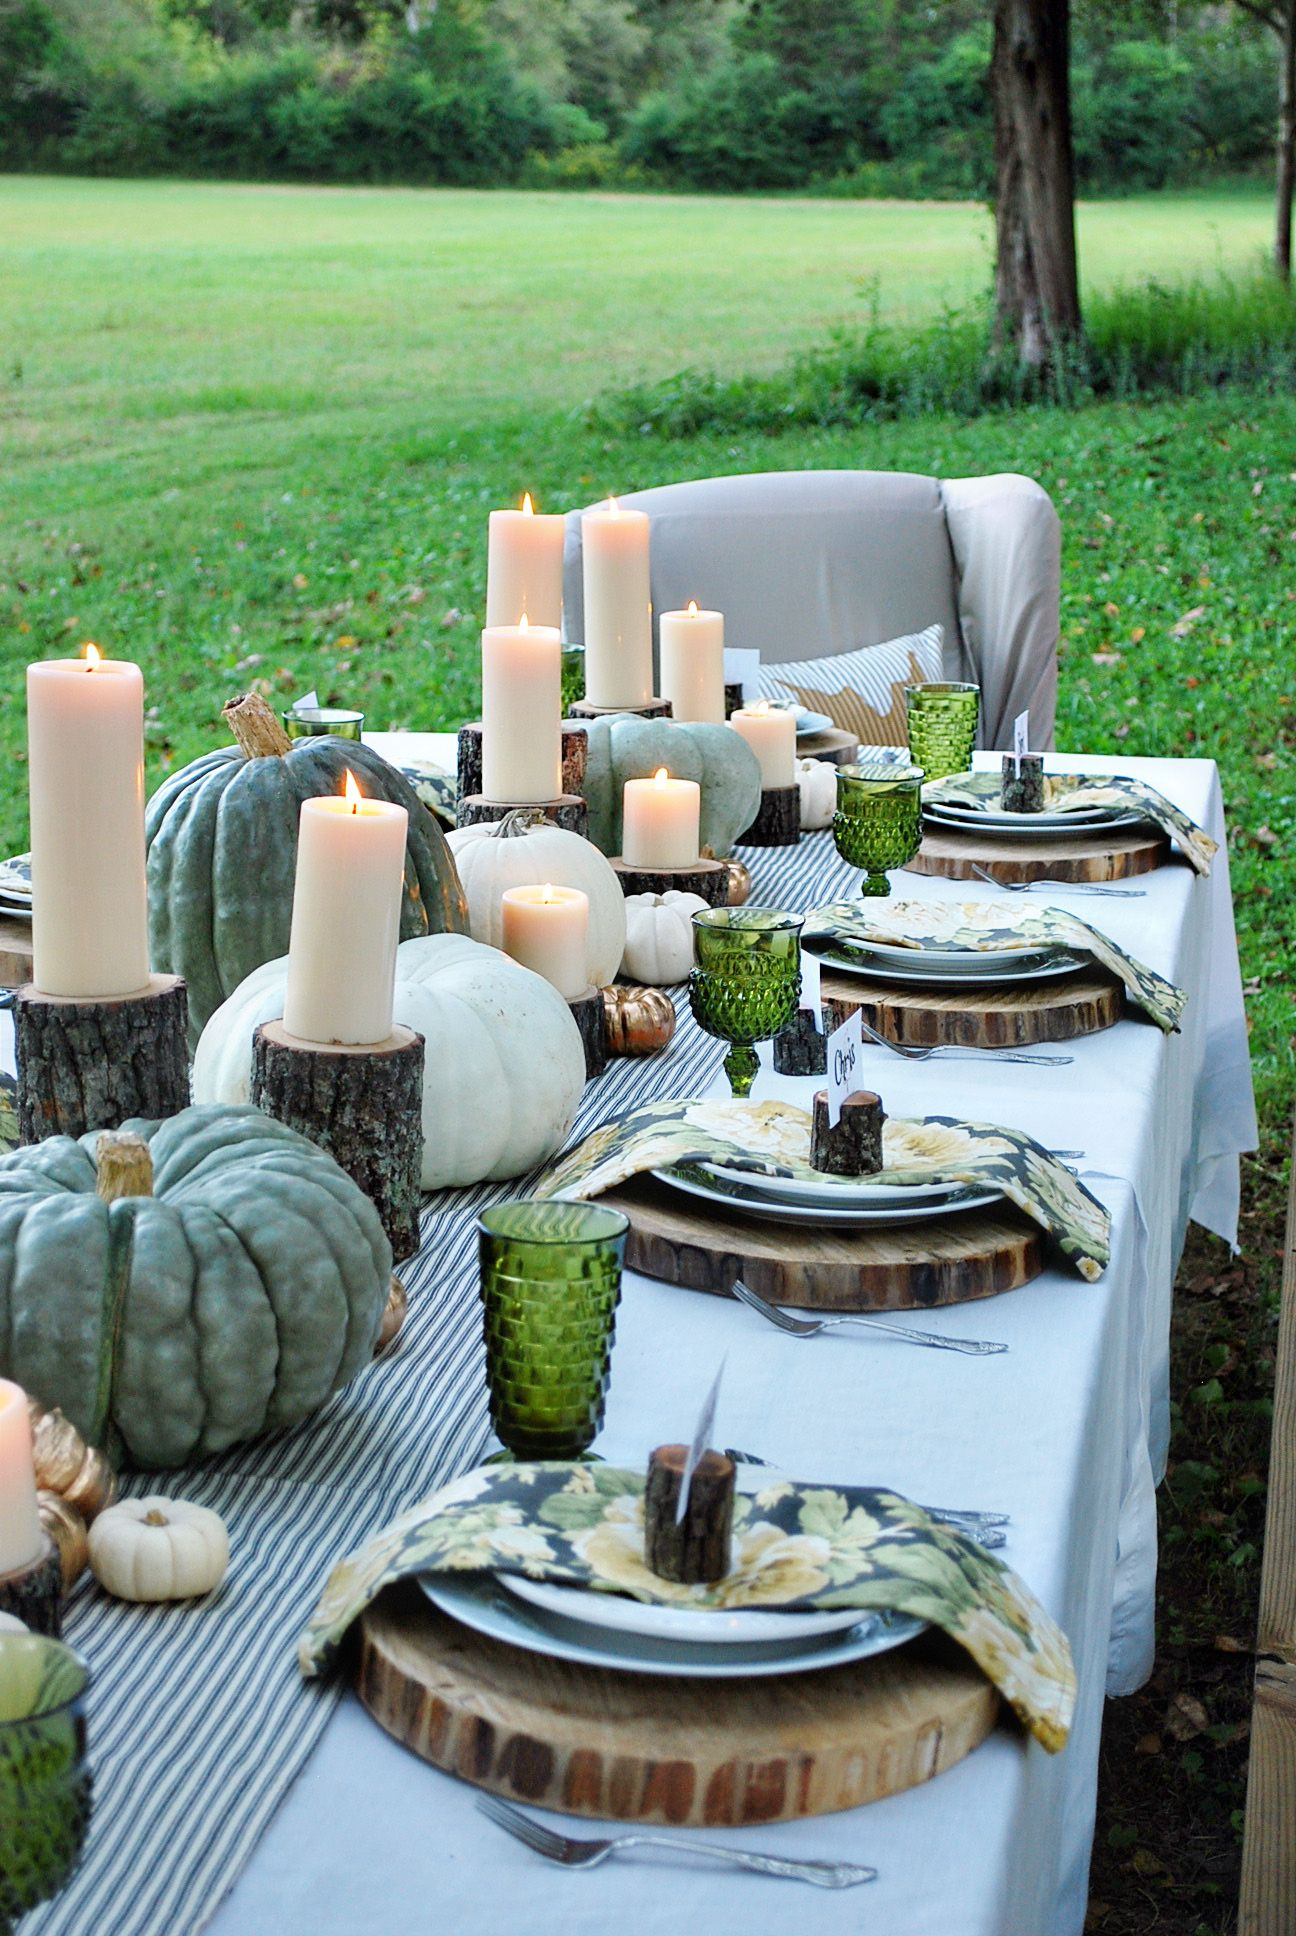 Fall Parties: 21 Fun and Festive Decorating Ideas